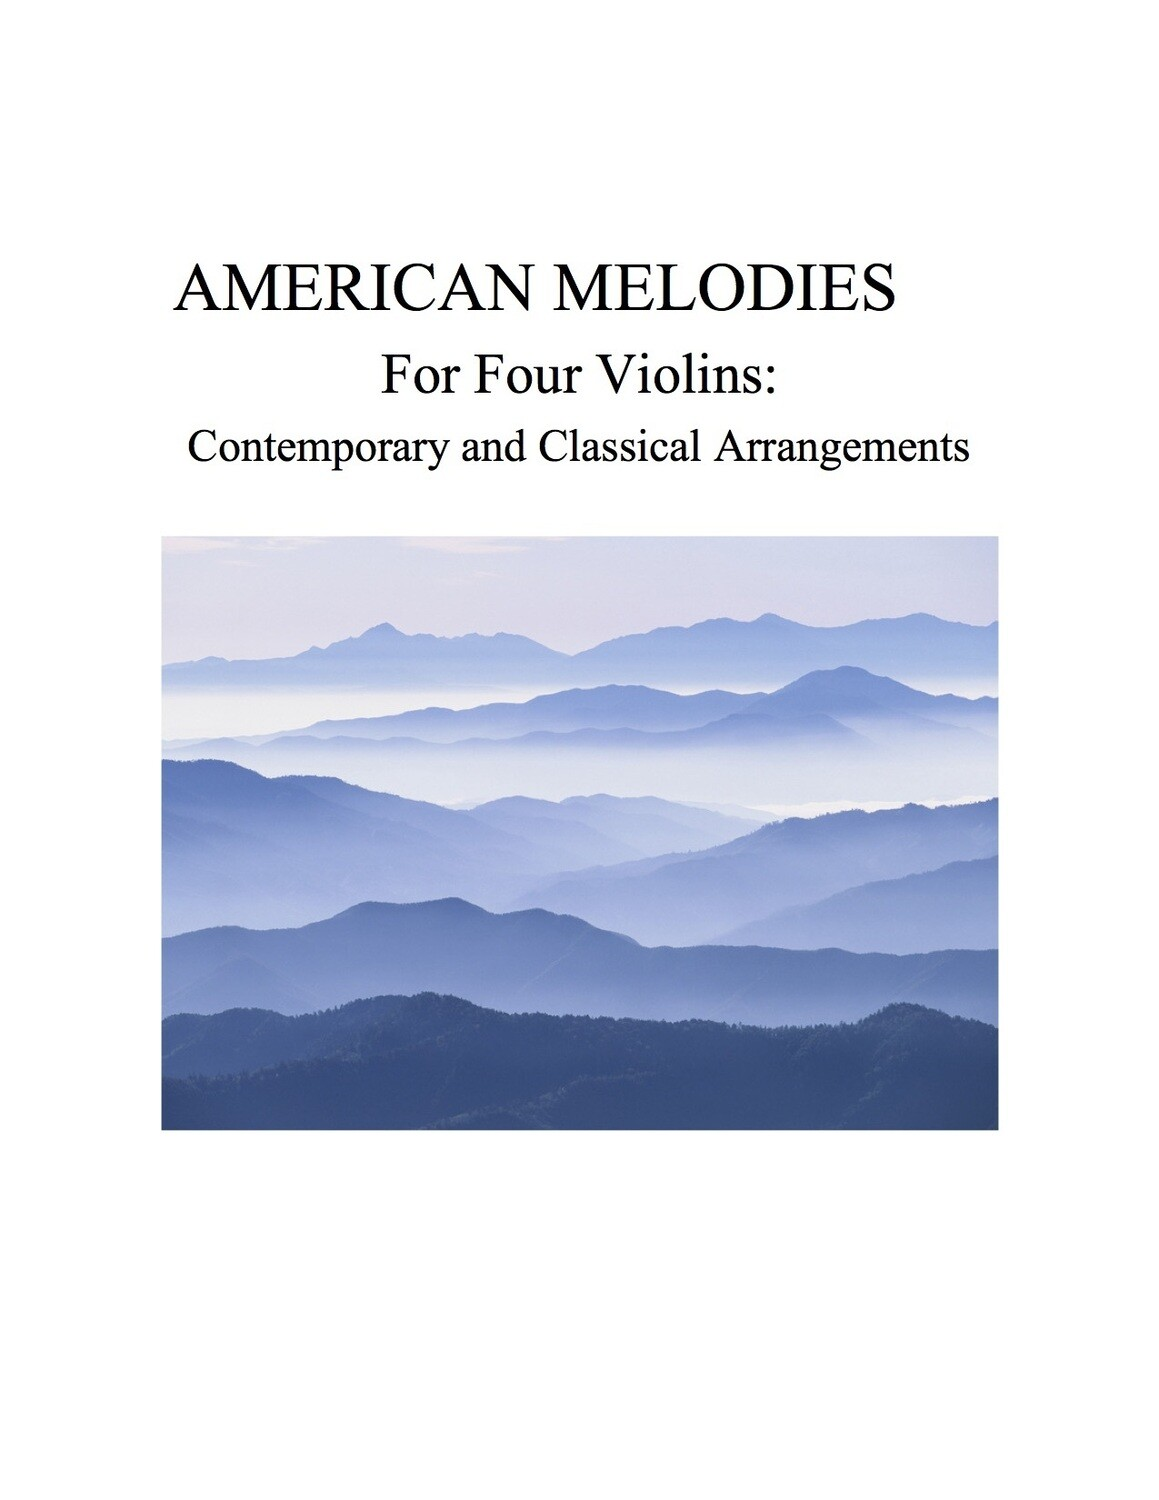 064 -  American Melodies For Four Violins and Cell Phone Symphony